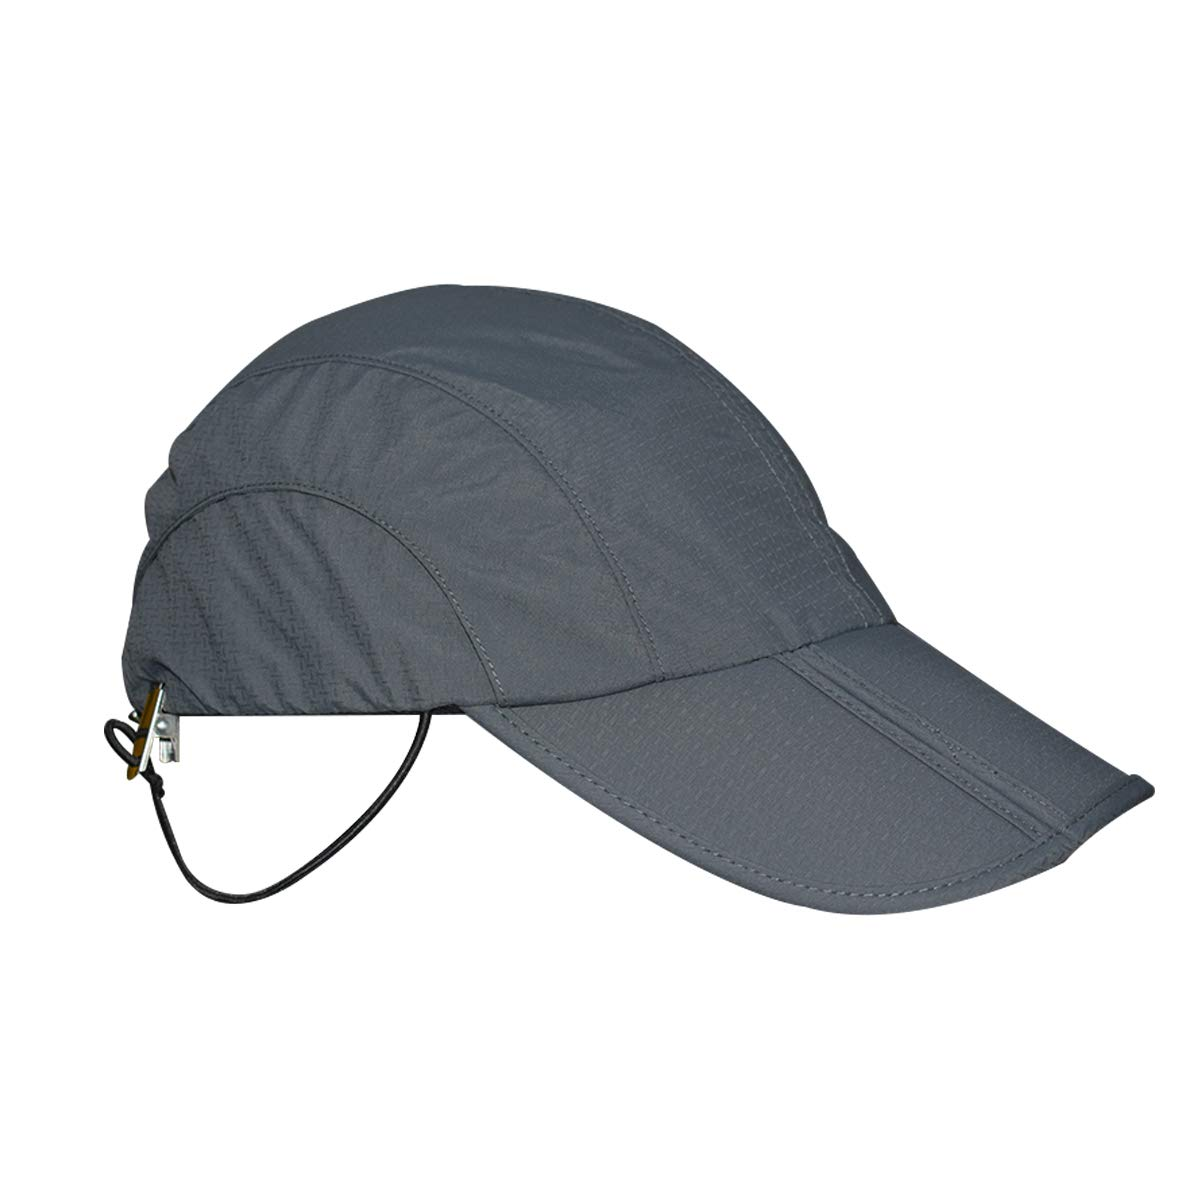 Sailing Cap Waterproof Breathable Fishing Hats for Men Women Technical UV Outdoor Sun Protection Packable